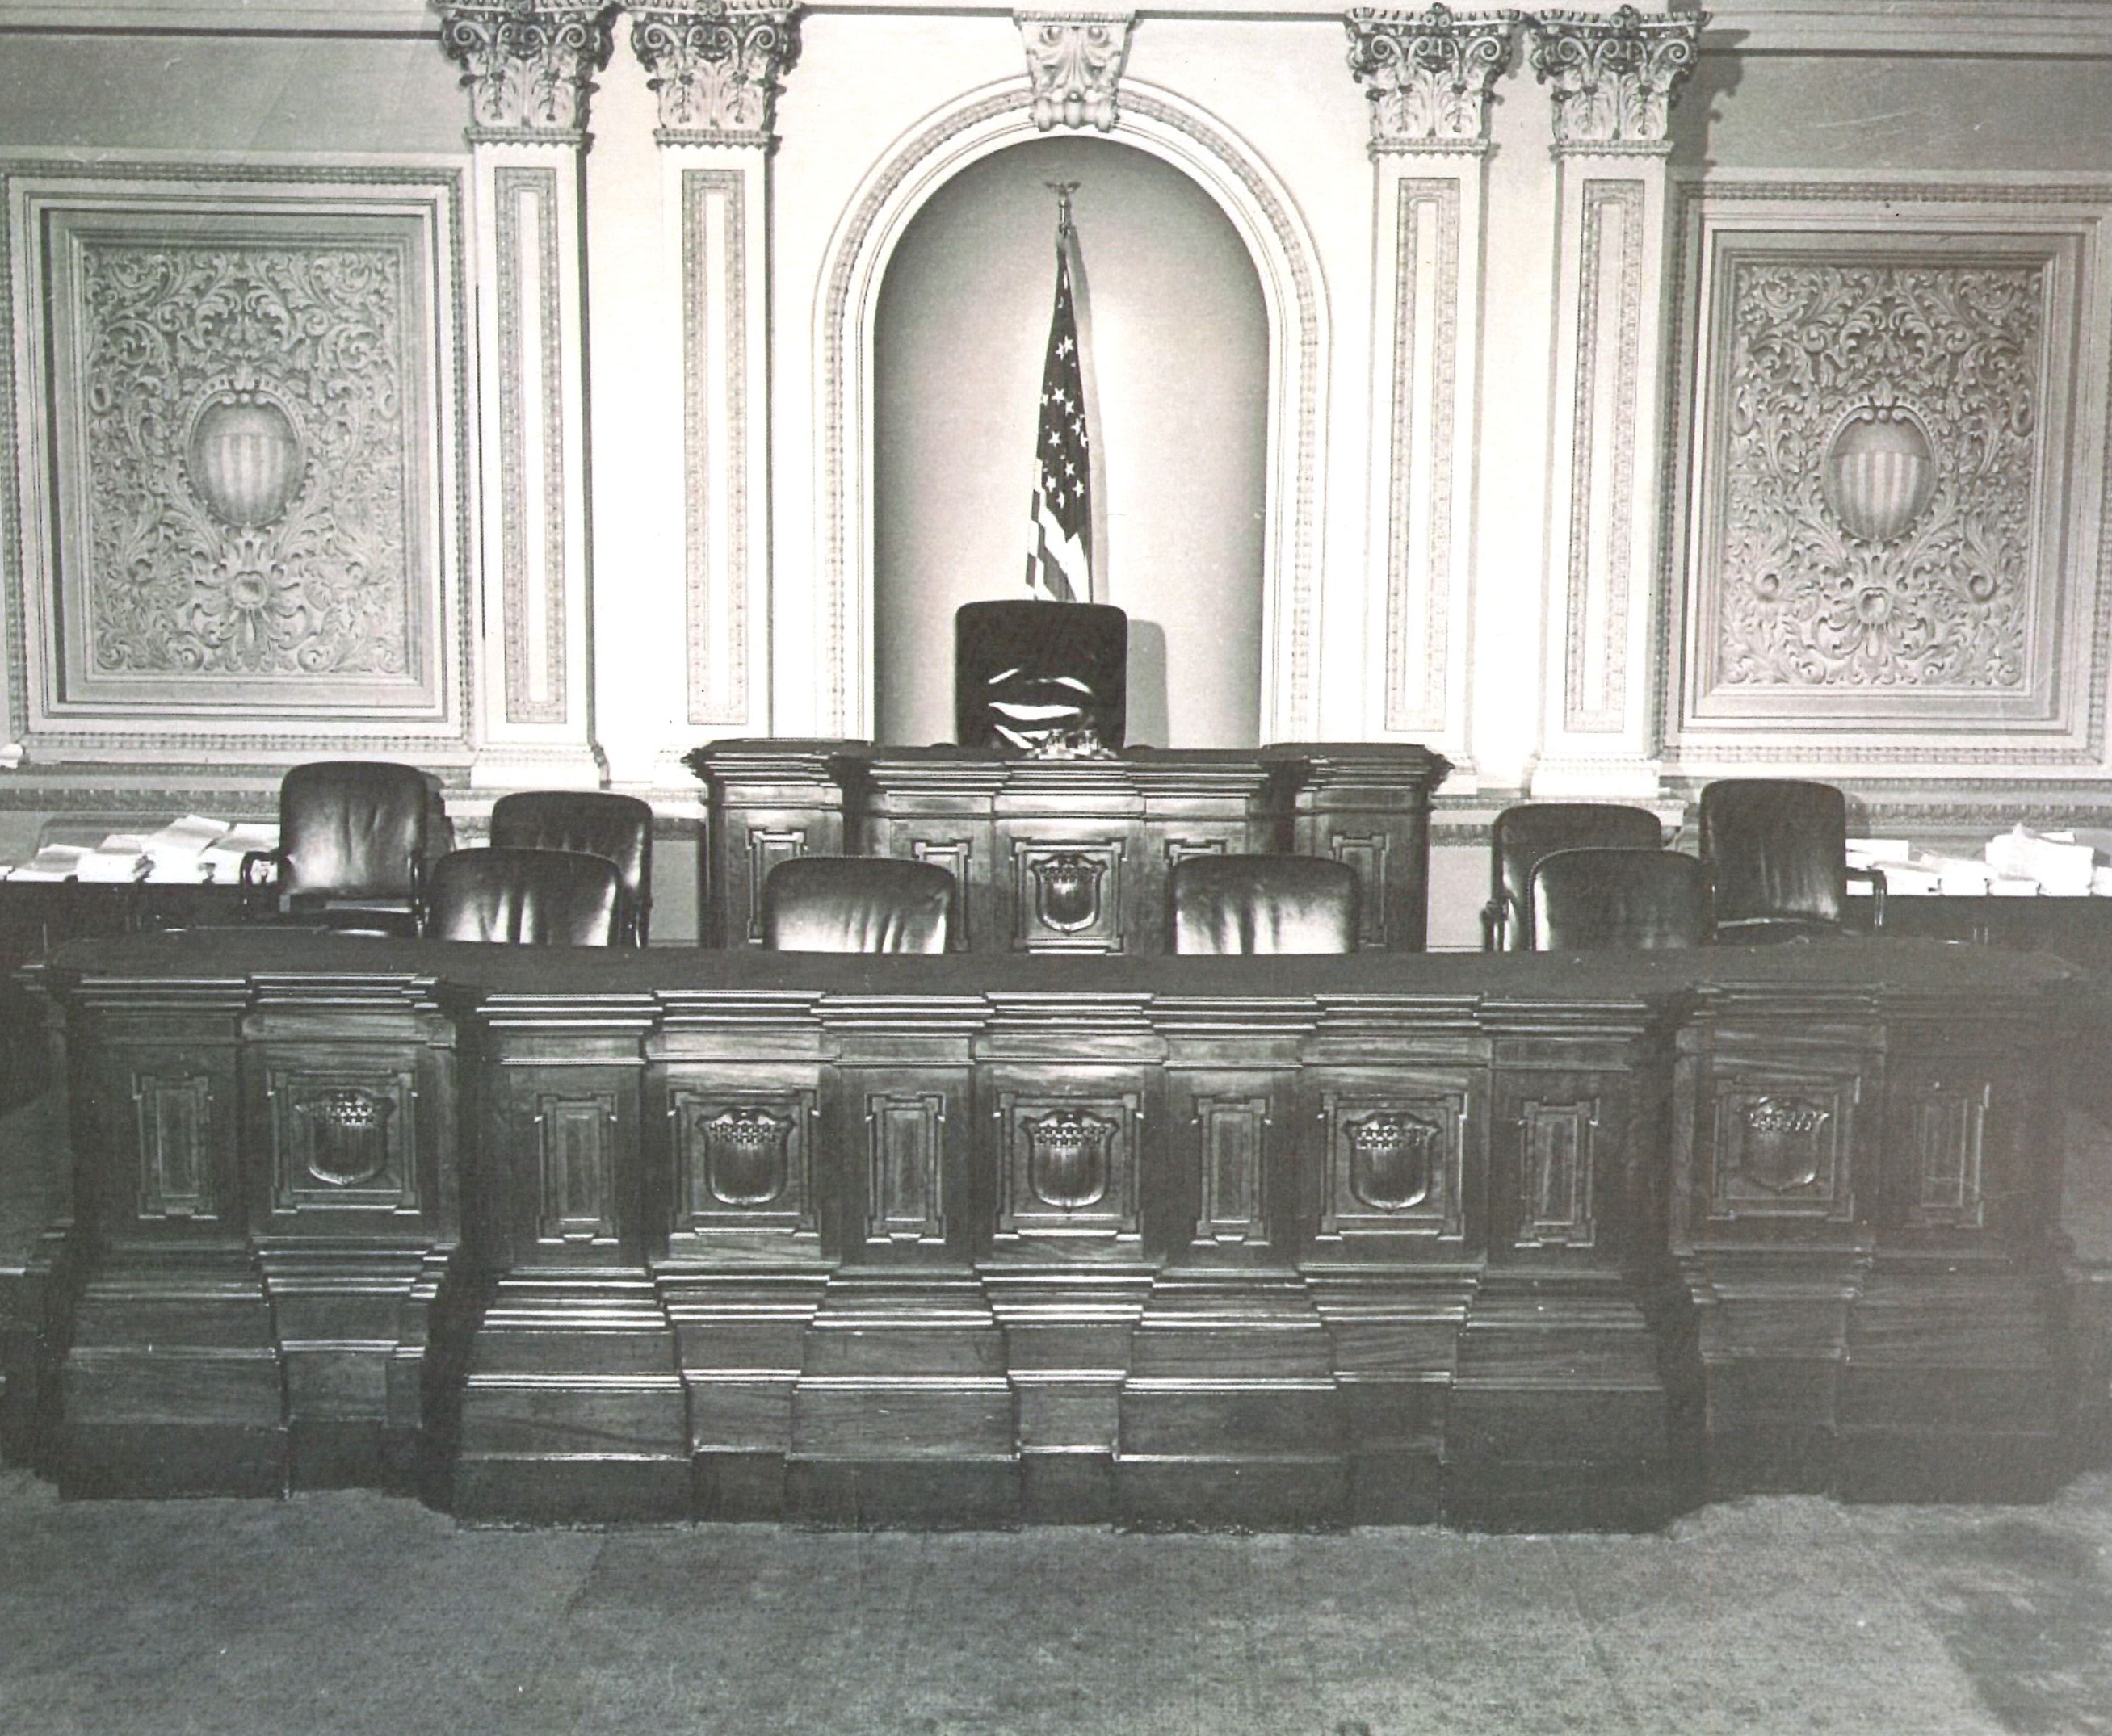 From D.C. to Kentucky:  The History of the U.S. Senate Clerk's Desk